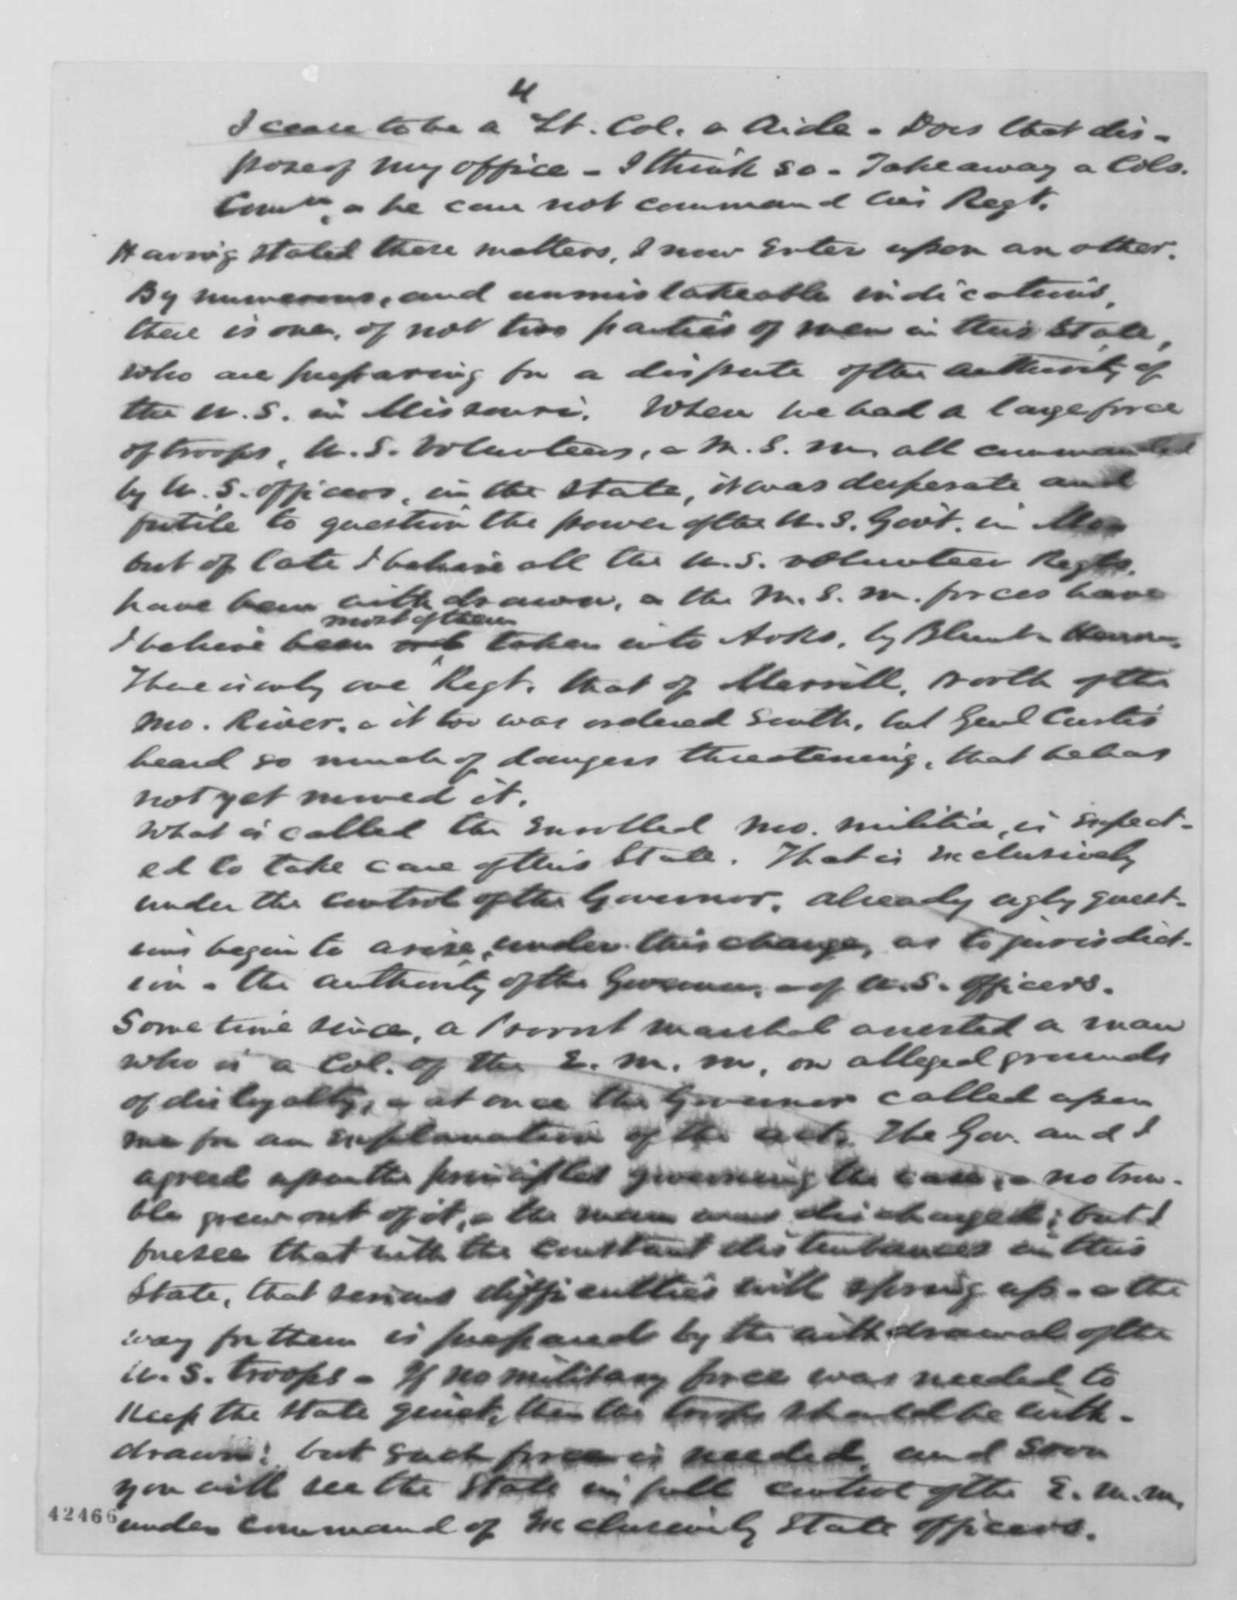 Franklin A. Dick to Montgomery Blair, Monday, January 26, 1863  (Affairs in Missouri; endorsed by Francis P. Blair Sr.)